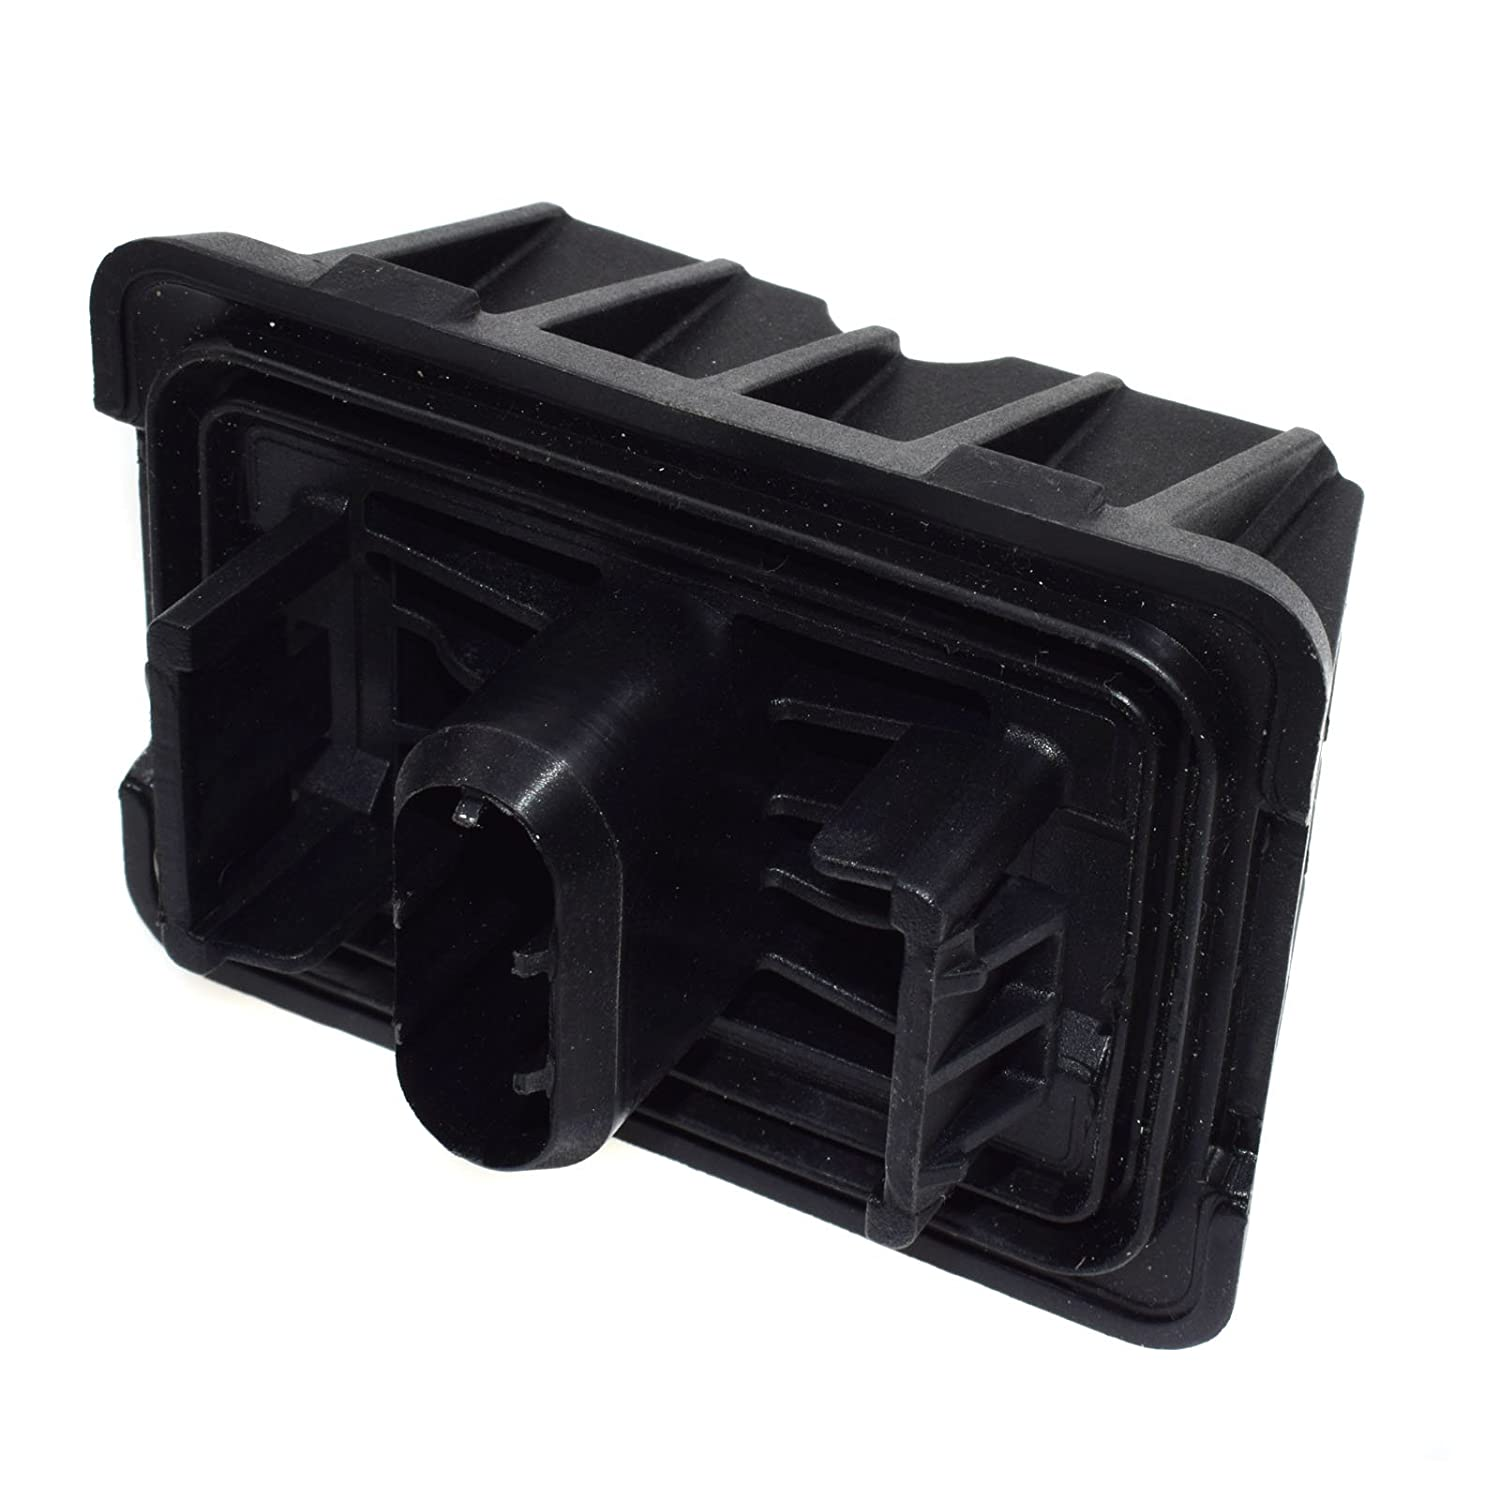 Neuf Jack Pad Voiture sous support levage 51717164761/pour Bmws 3er E92/316i 318i 320d 320I 320/x P 325d 325I 325/x i 330d 330I 330/x D 330/x i 2007/2008/2009/2010/2011/2012/2013